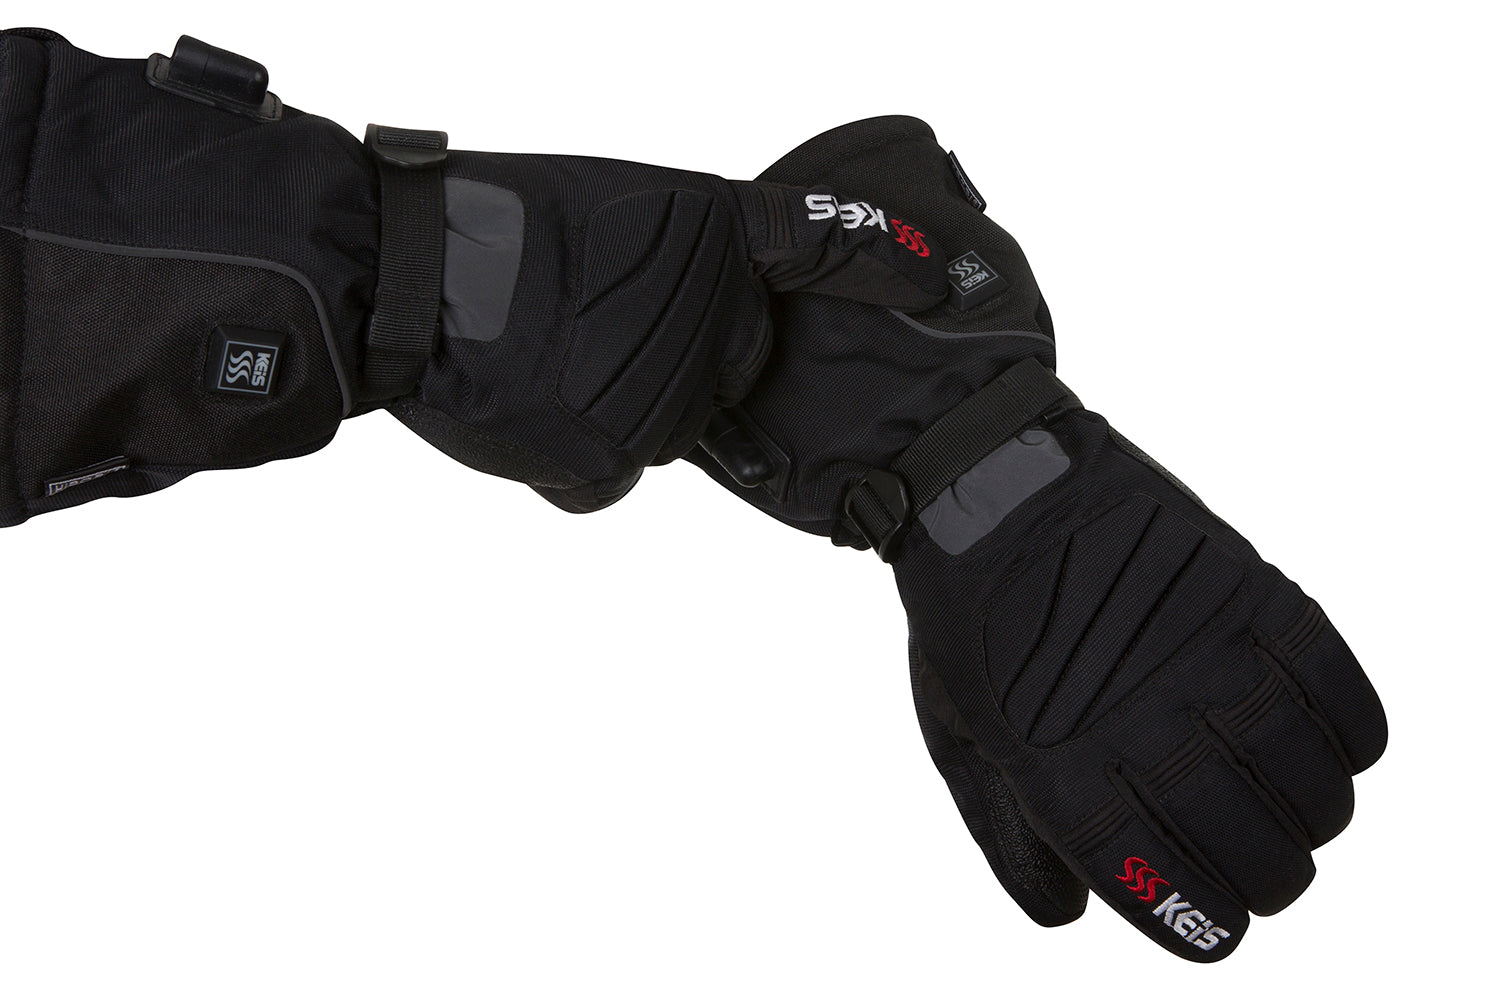 heated gloves with temperature control